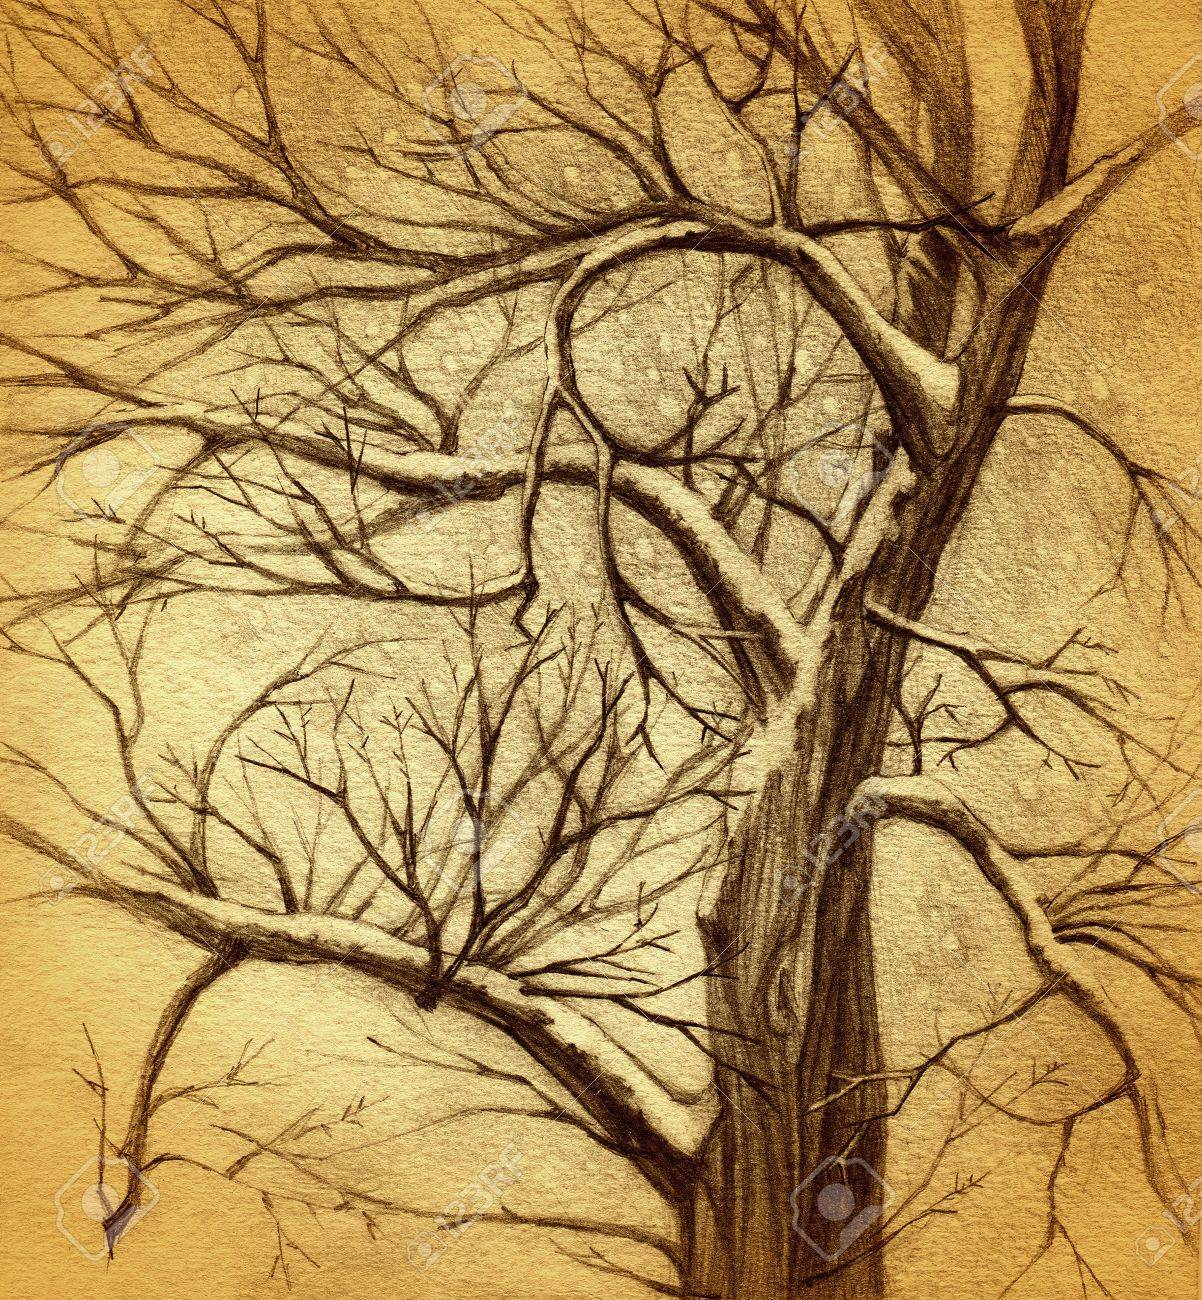 1202x1300 Vintage Tree Drawing Stock Photo, Picture And Royalty Free Image